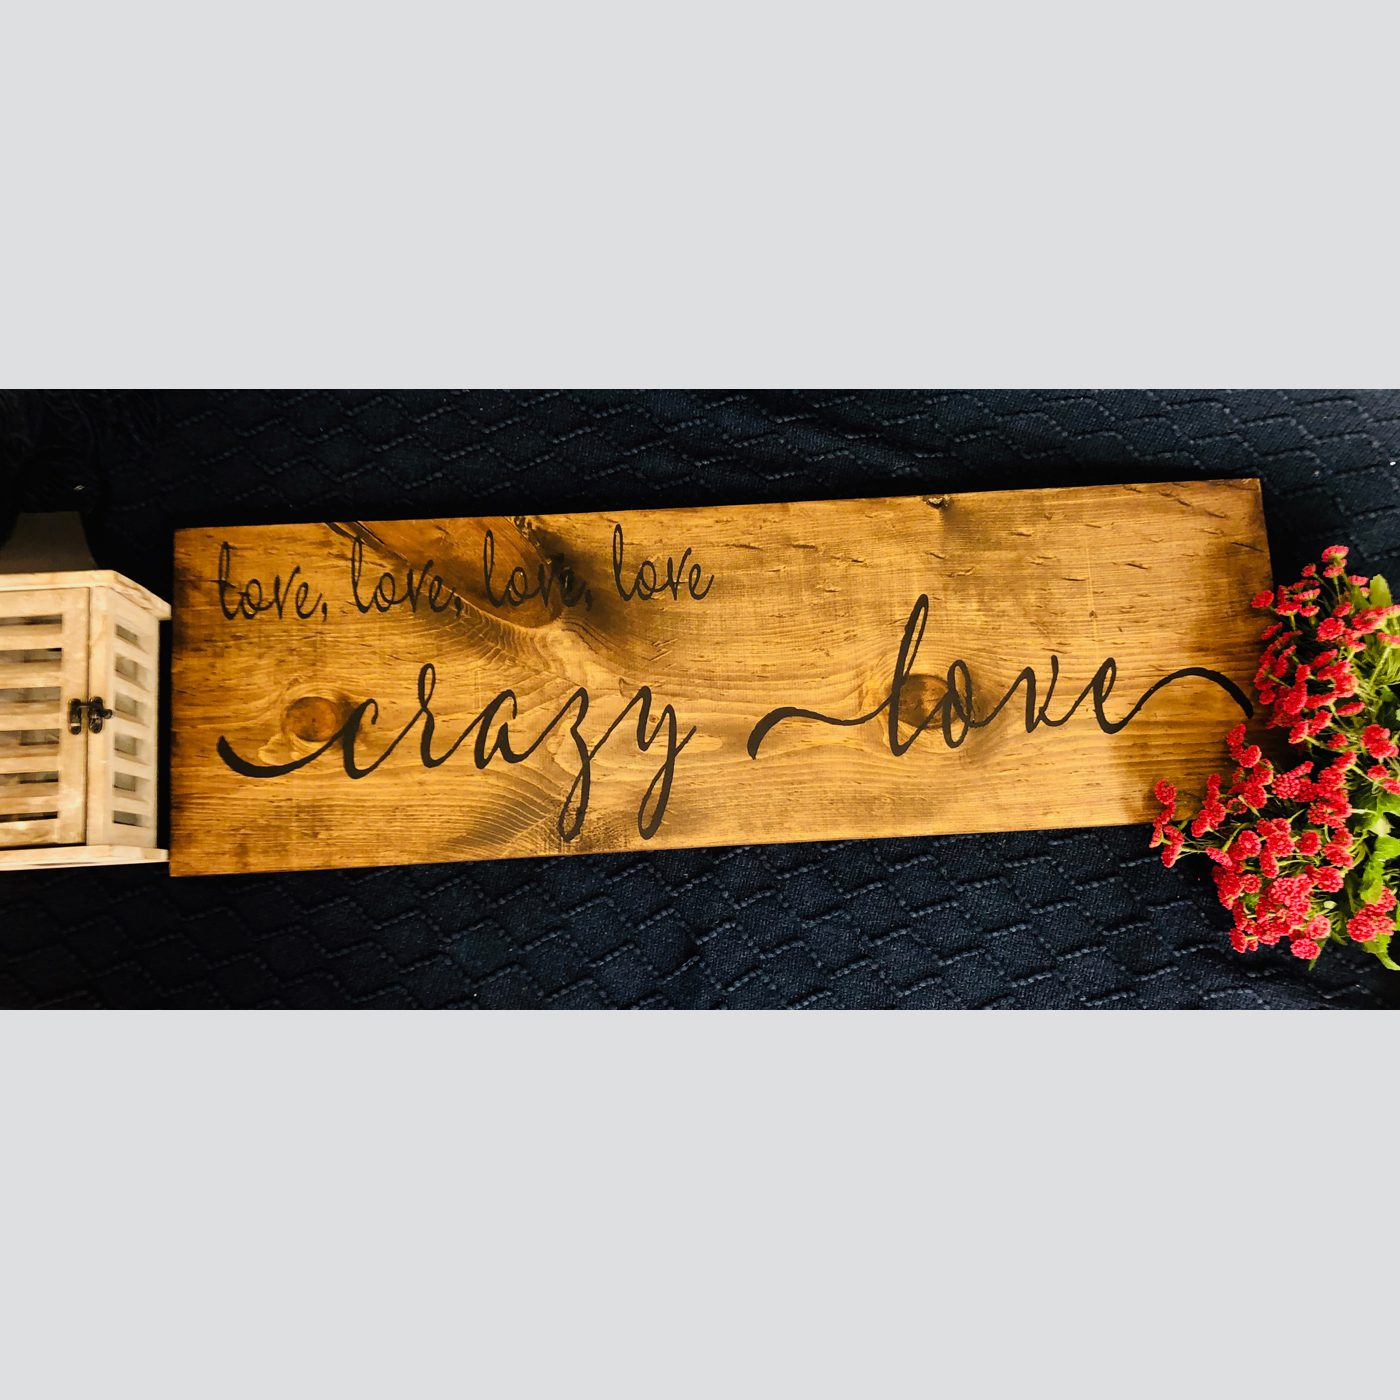 Love, Love, Love, Crazy Love DIY wood sign